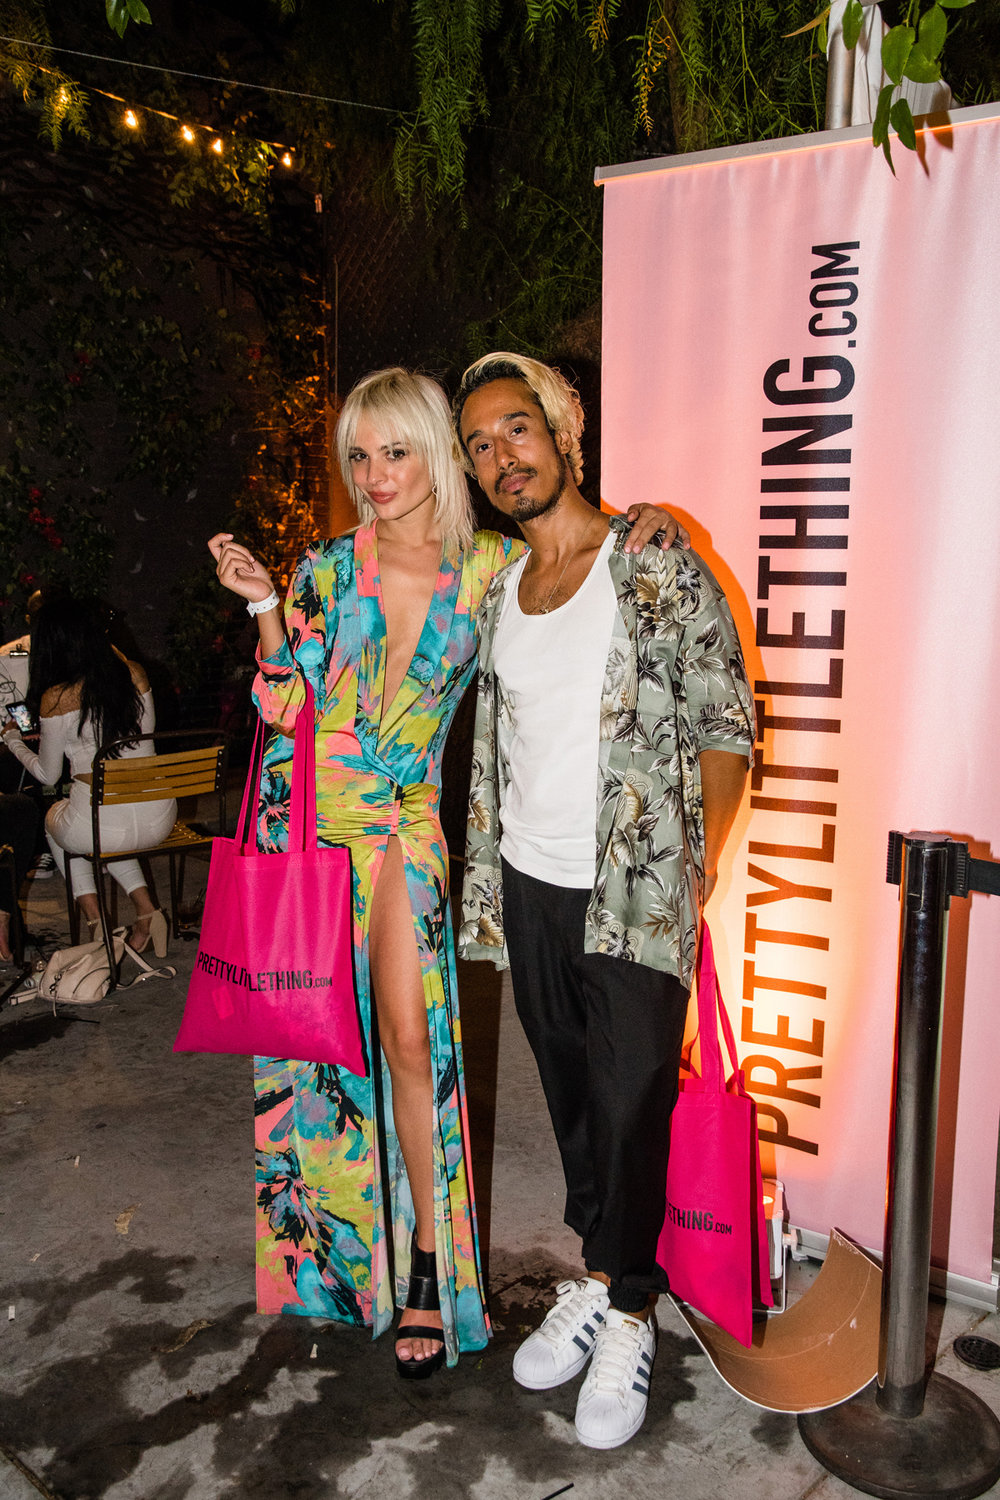 PrettyLittleThing PLT X Olivia Culpo Collection  Celebrity Launch Party party goers with their bag of goodies.jpg